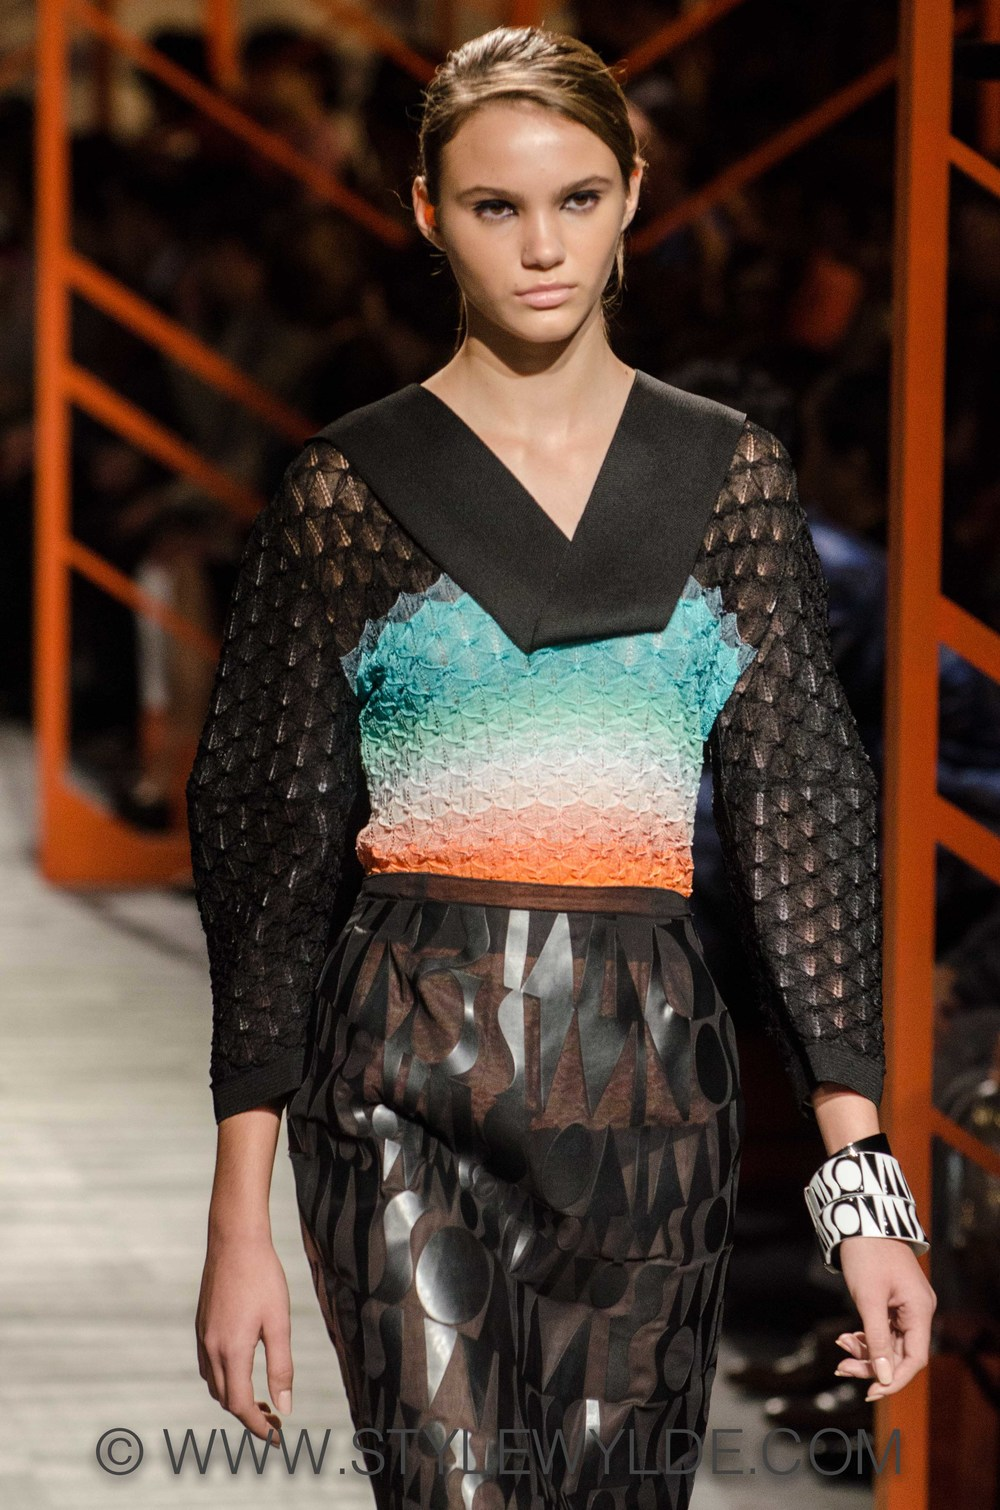 STYLEWYLDE_Missoni_SS2014 (1 of 1)-18.jpg